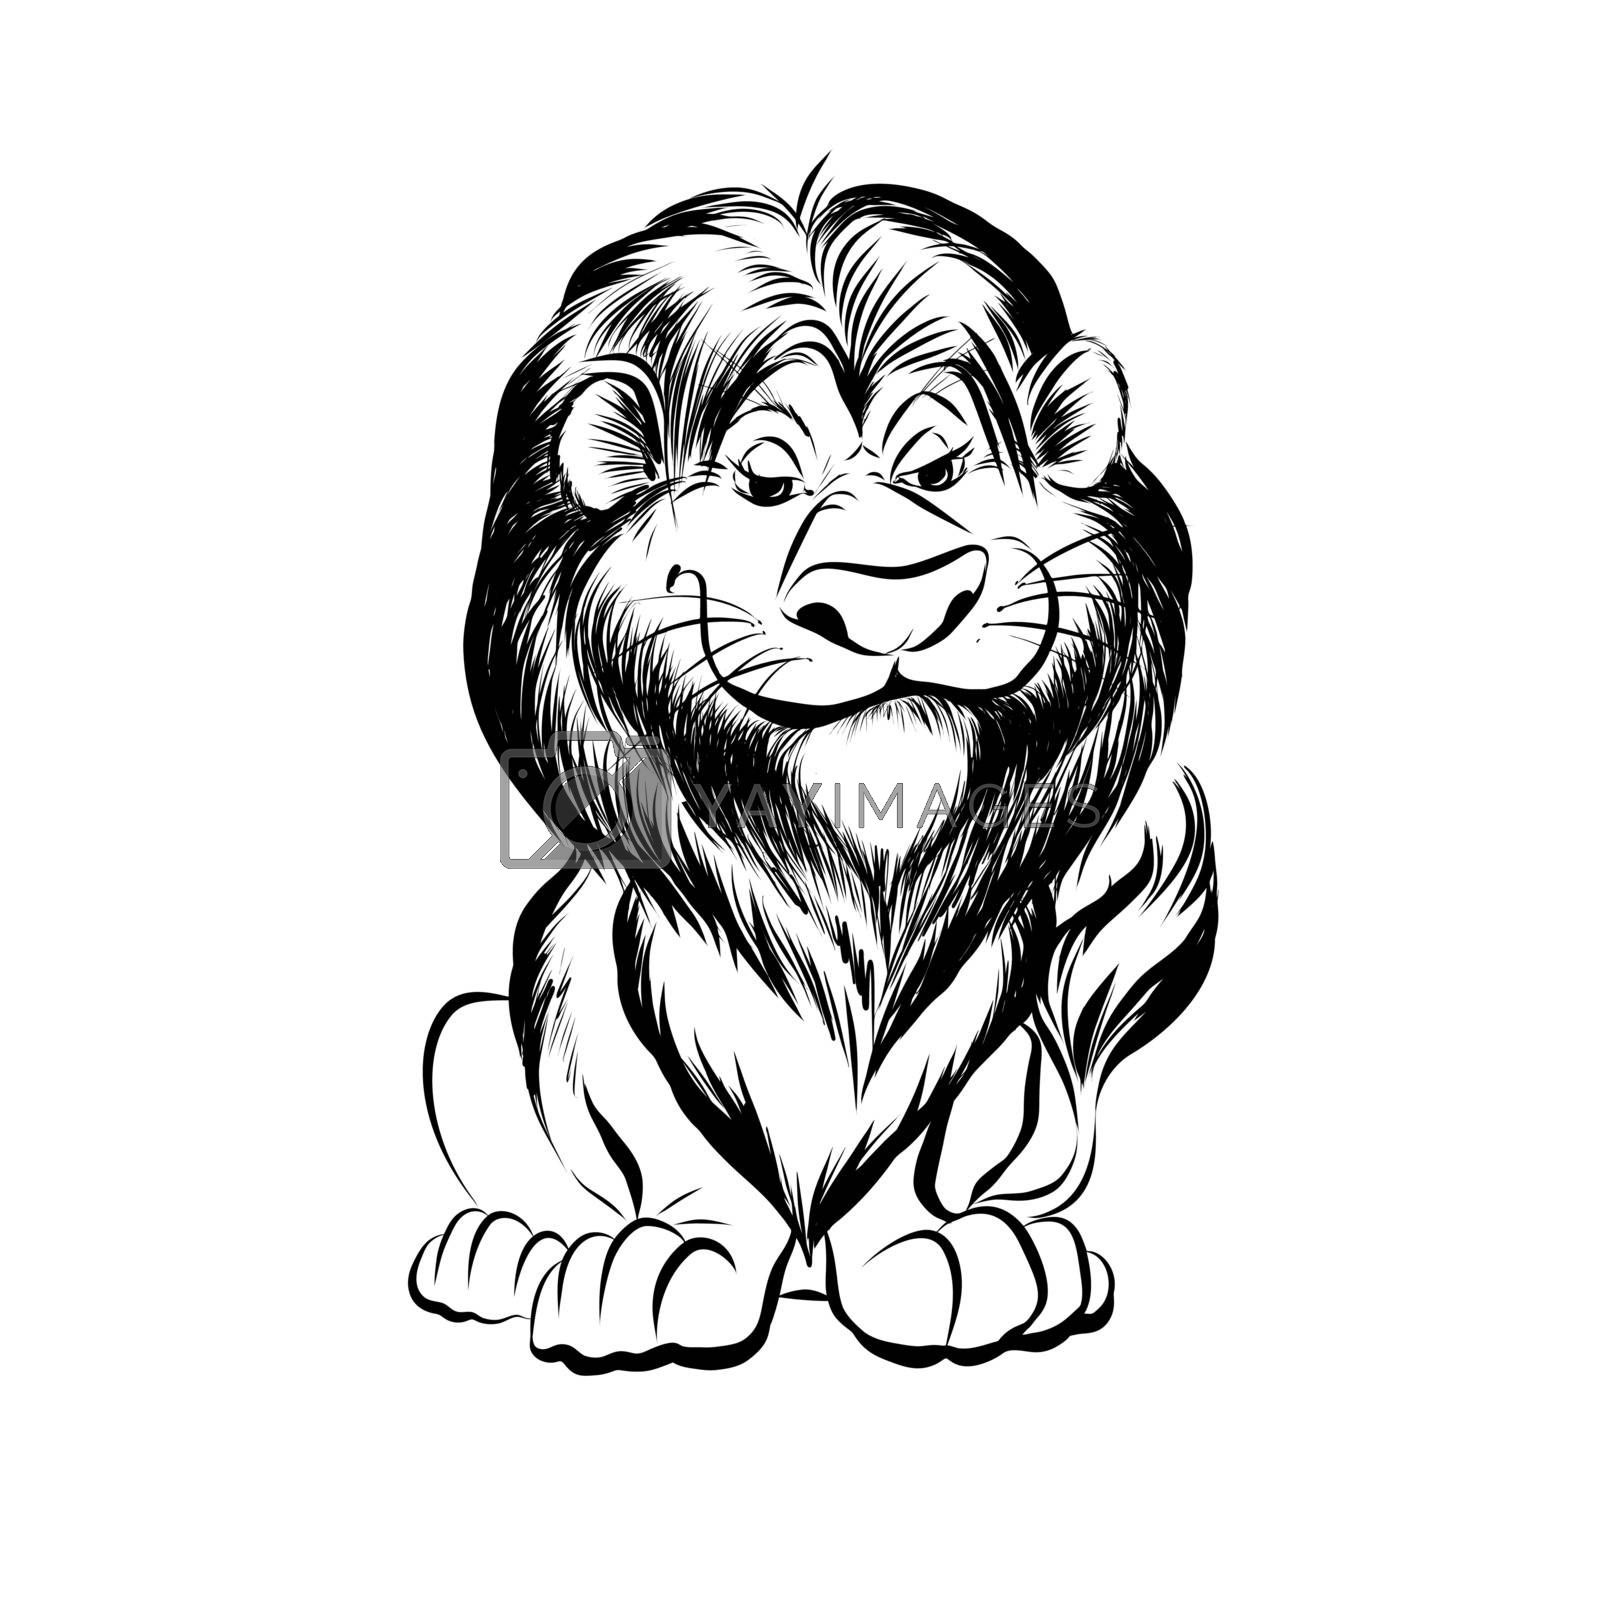 Hand Drawn Sketch of Cartoon Funny Lion Character. Illustration on White Background